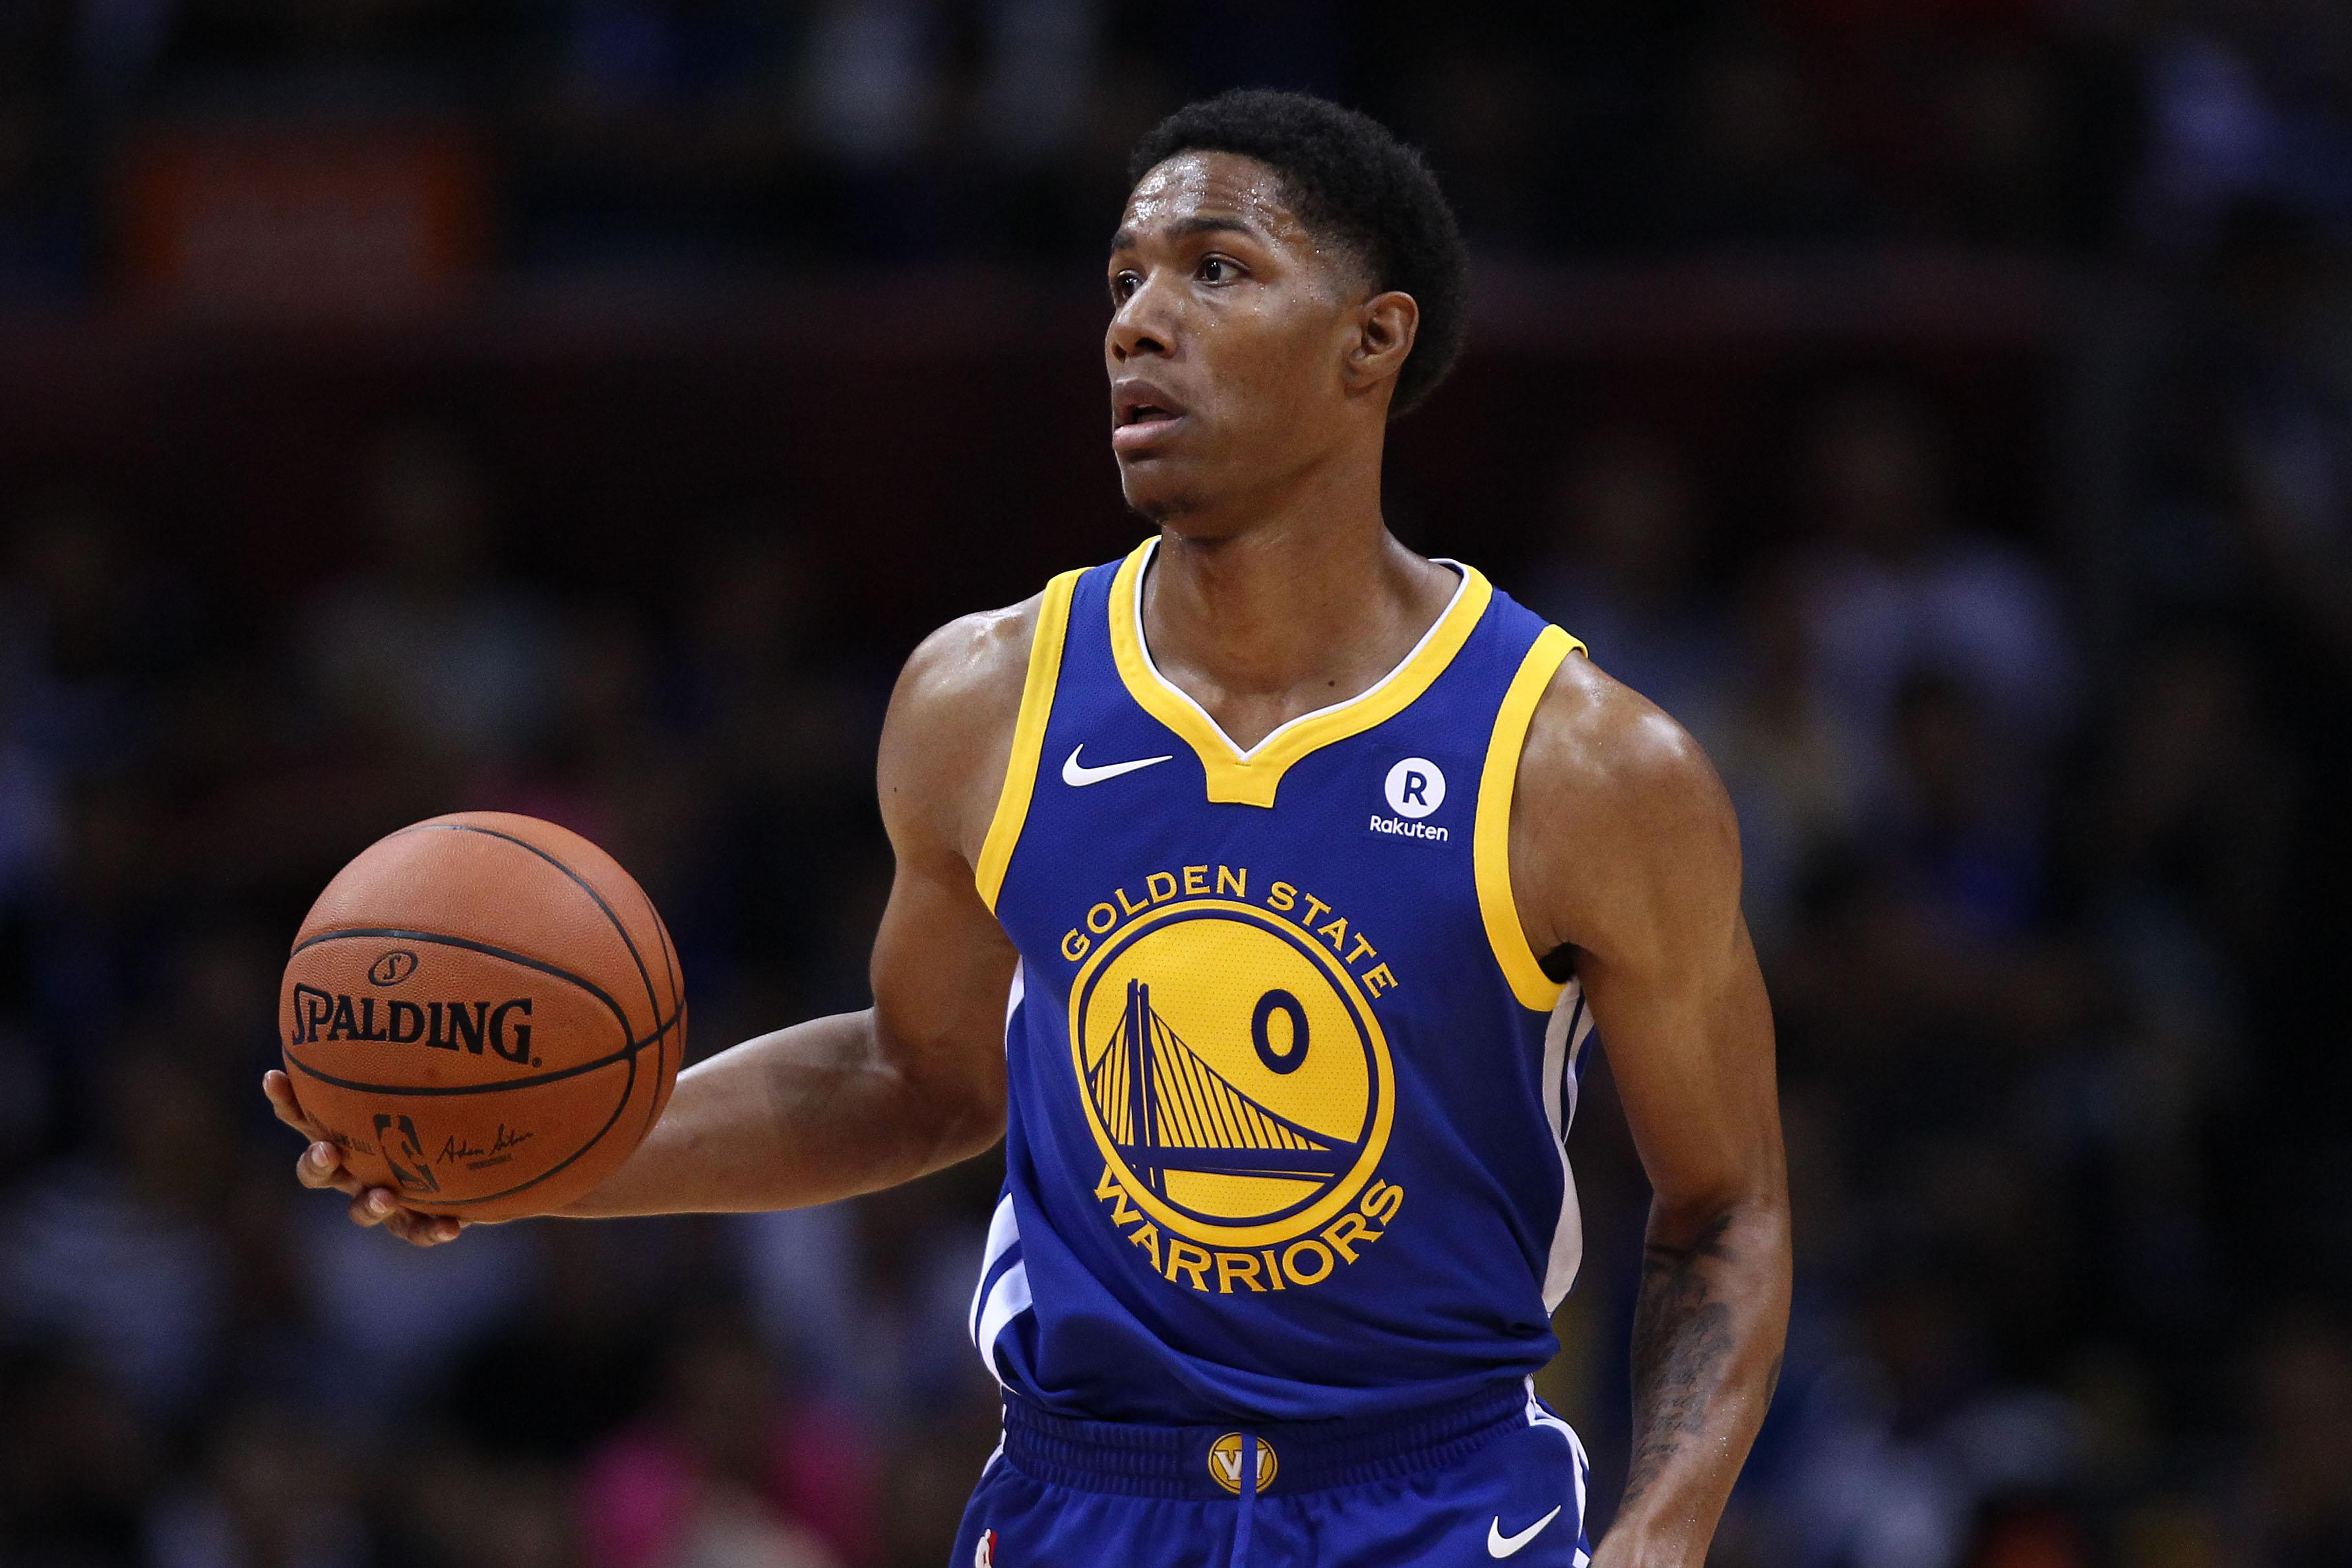 7 things to know about Patrick McCaw's injury and status